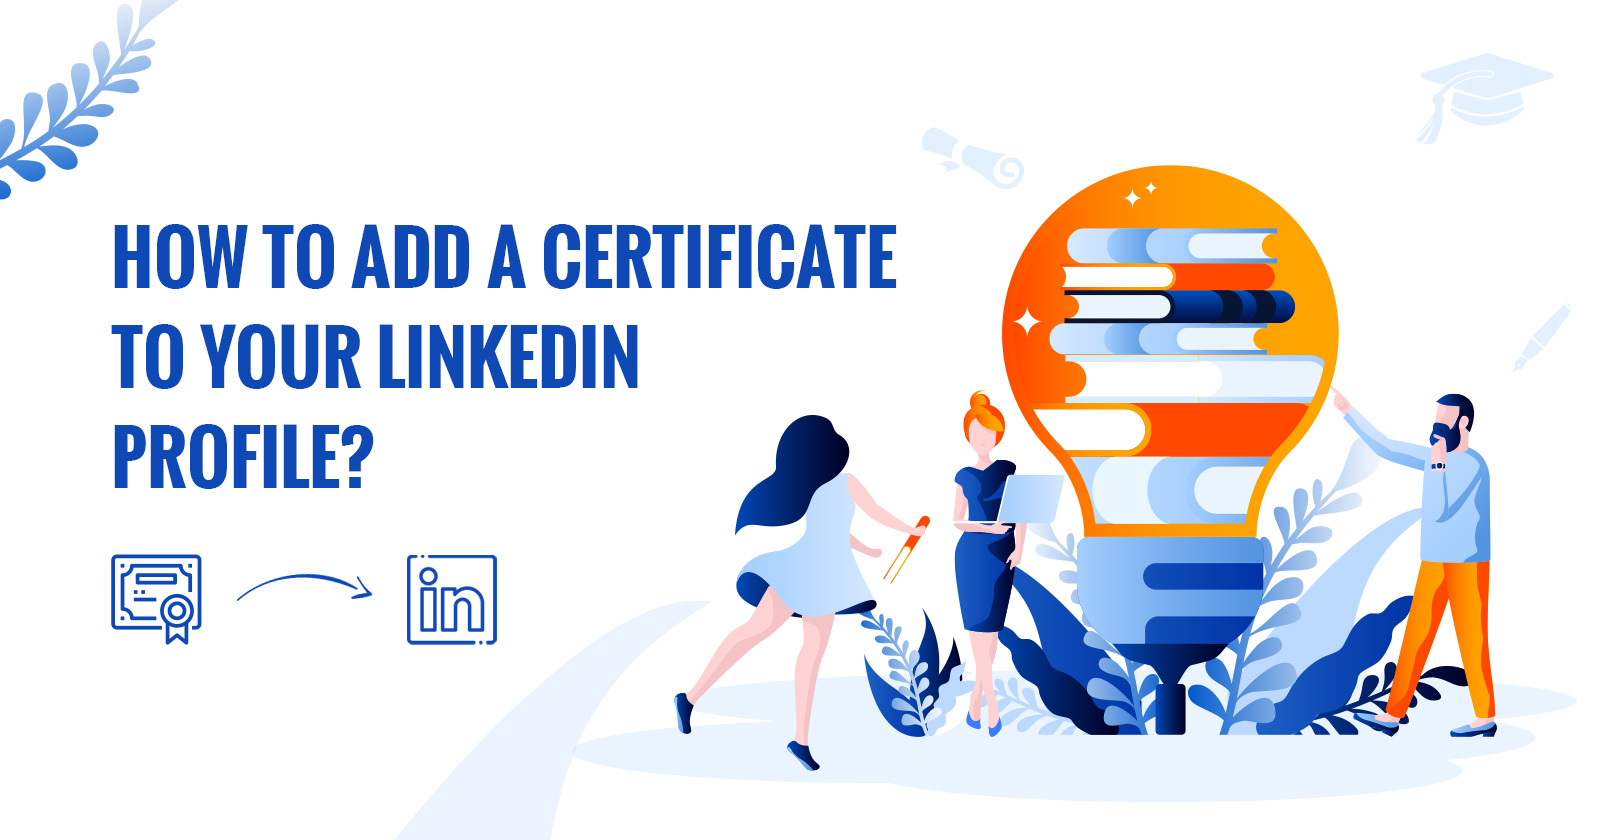 How to add a certificate to your LinkedIn profile